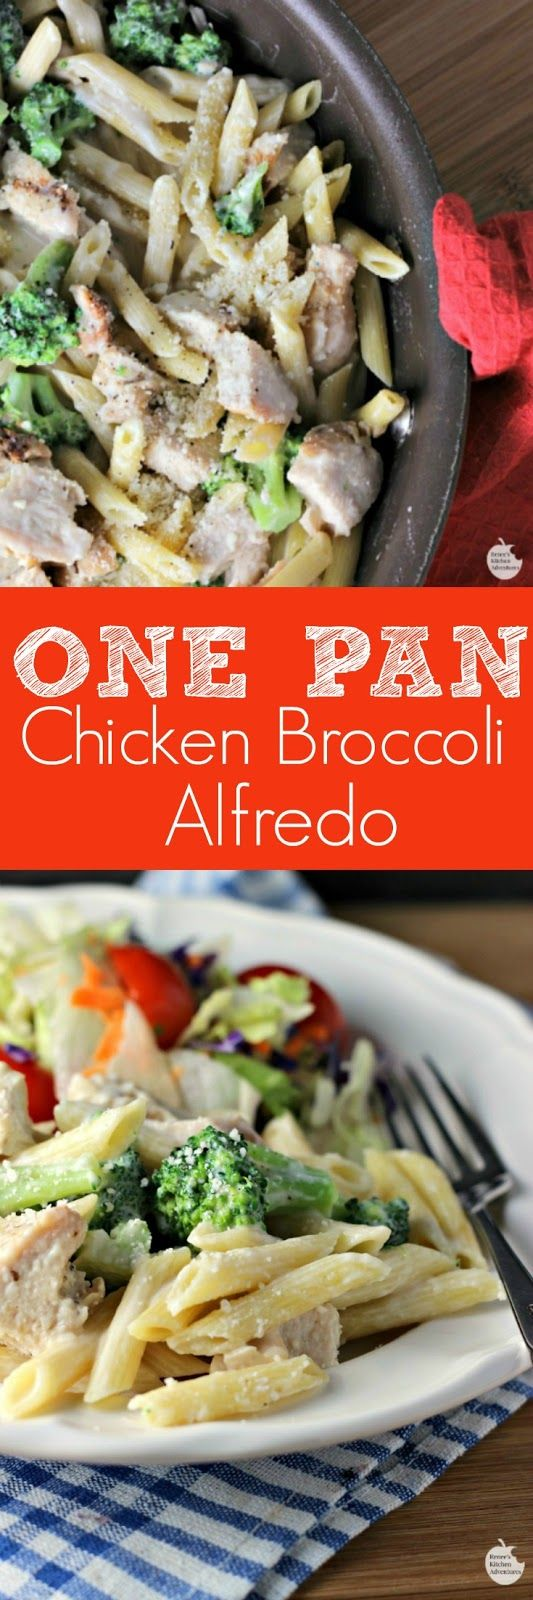 [ad] One Pan Chicken Broccoli Alfredo | by Renee's Kitchen Adventures - quick and easy healthy recipe great for a weeknight dinner done in about 10 minutes from start to finish! #EverydayEffortless